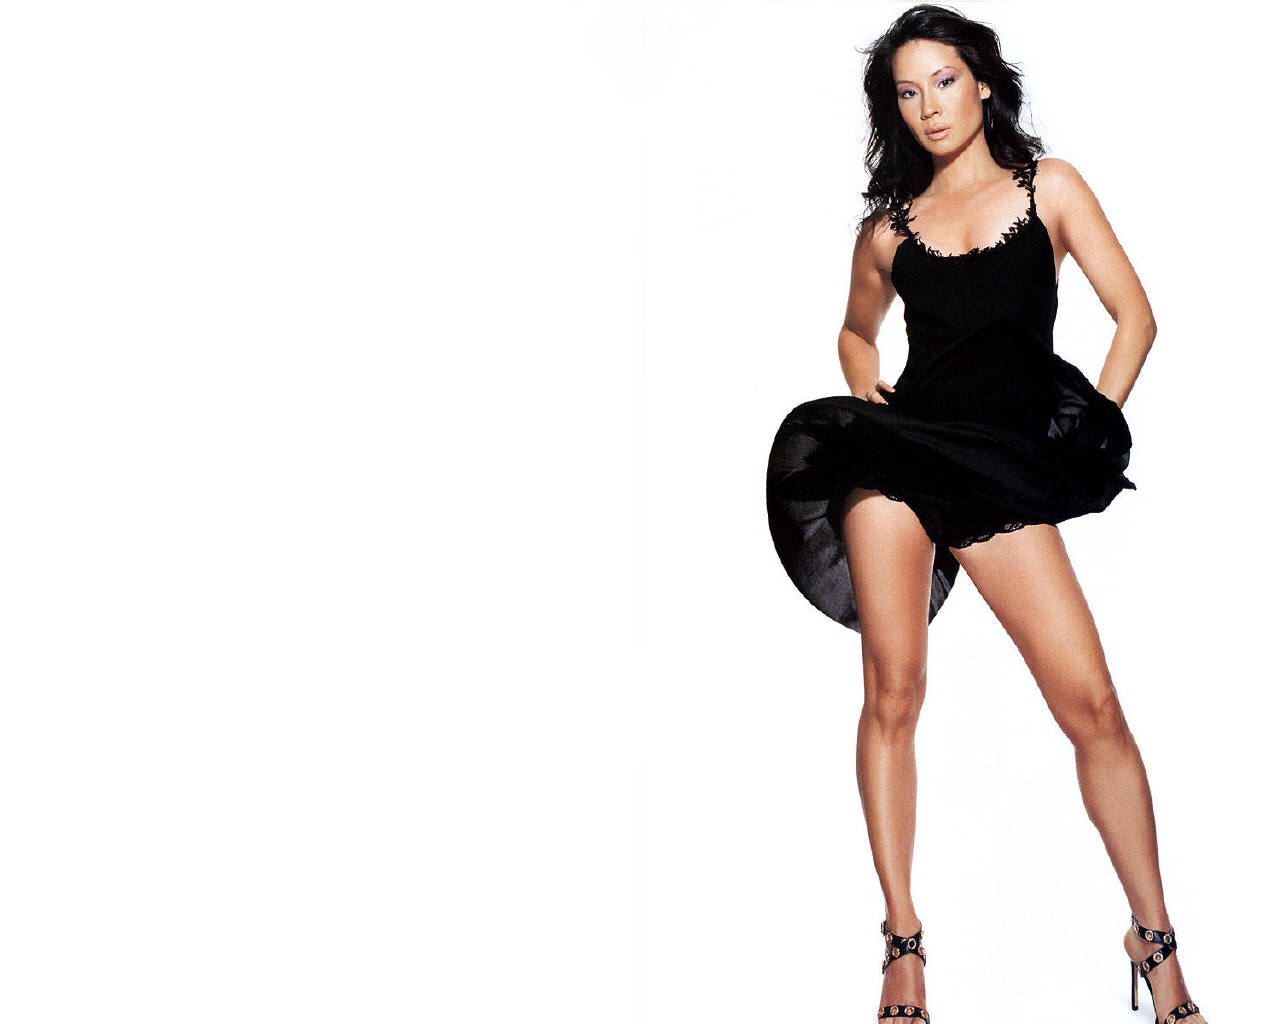 Lucy Liu images Lucy Liu HD wallpaper and background photos 196238 1280x1024